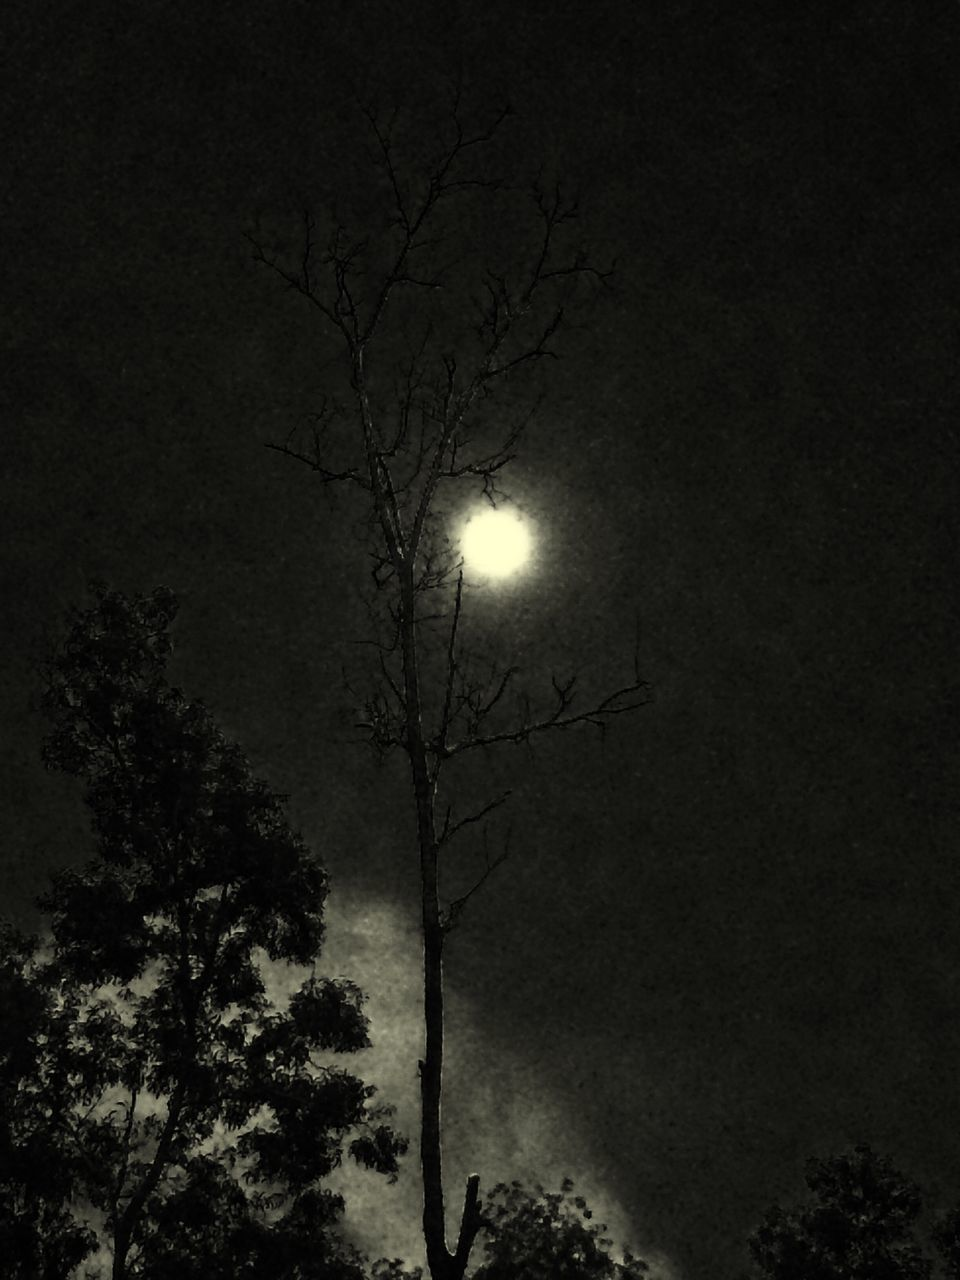 moon, tree, low angle view, night, silhouette, illuminated, nature, outdoors, no people, moonlight, sky, branch, bare tree, beauty in nature, astronomy